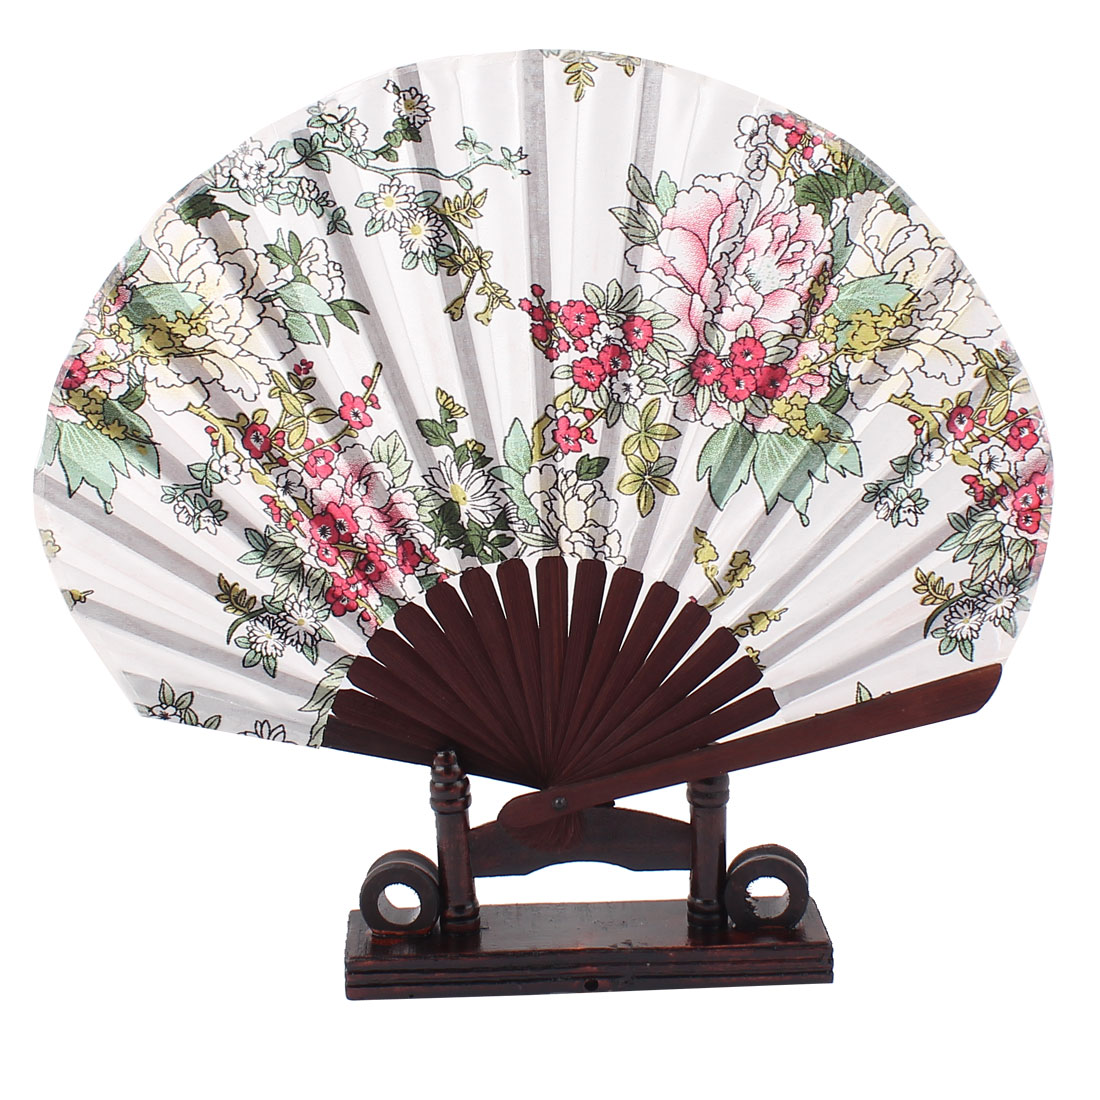 Chinese Wedding Party Favor Peony Print Wood Folding Hand Fan Colorful w Holder